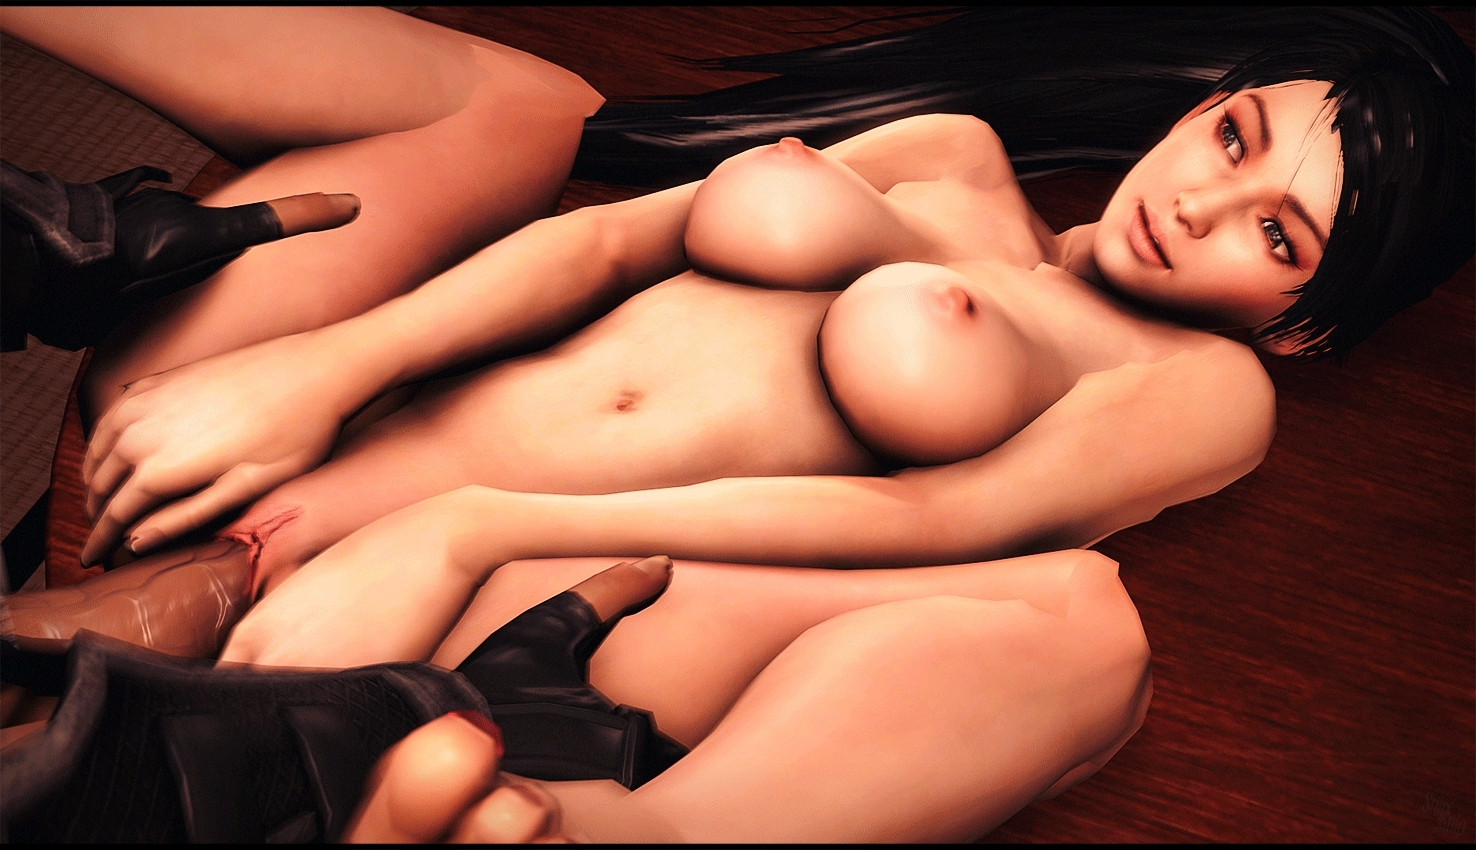 Gta japanese porno video sexual famous boobs